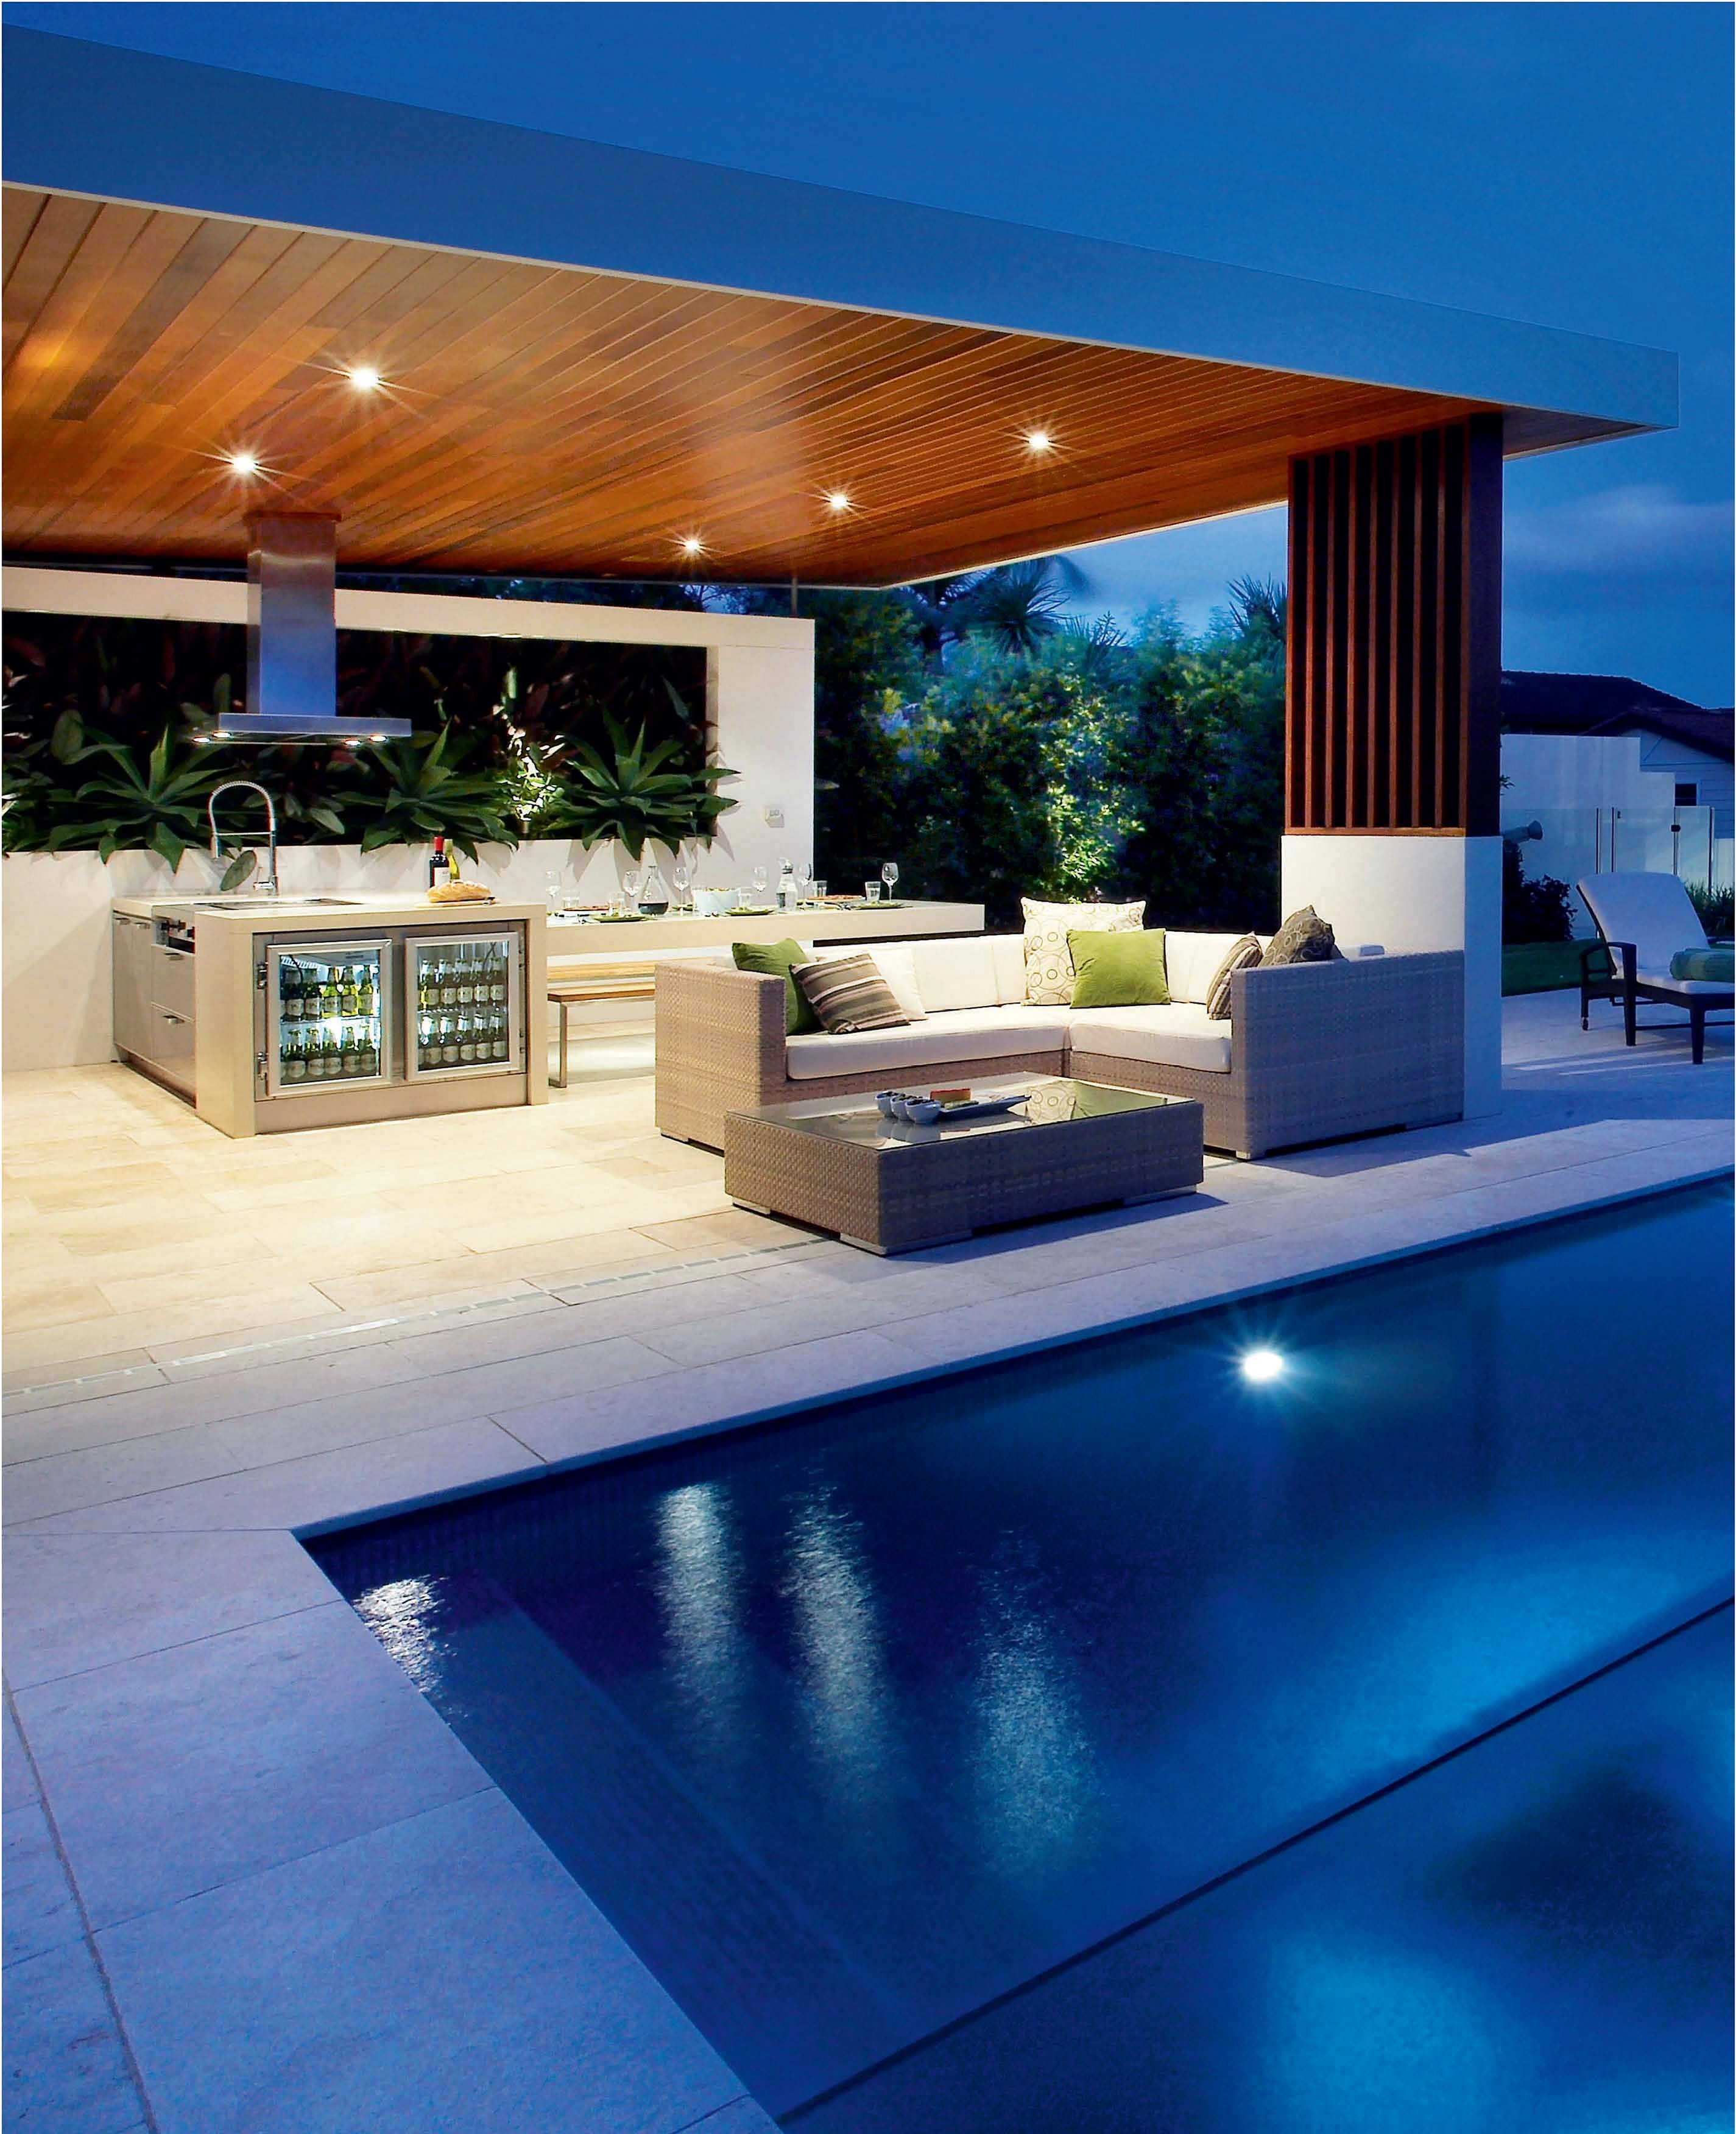 42+ Awesome Outdoor Living Design Ideas On A Budget